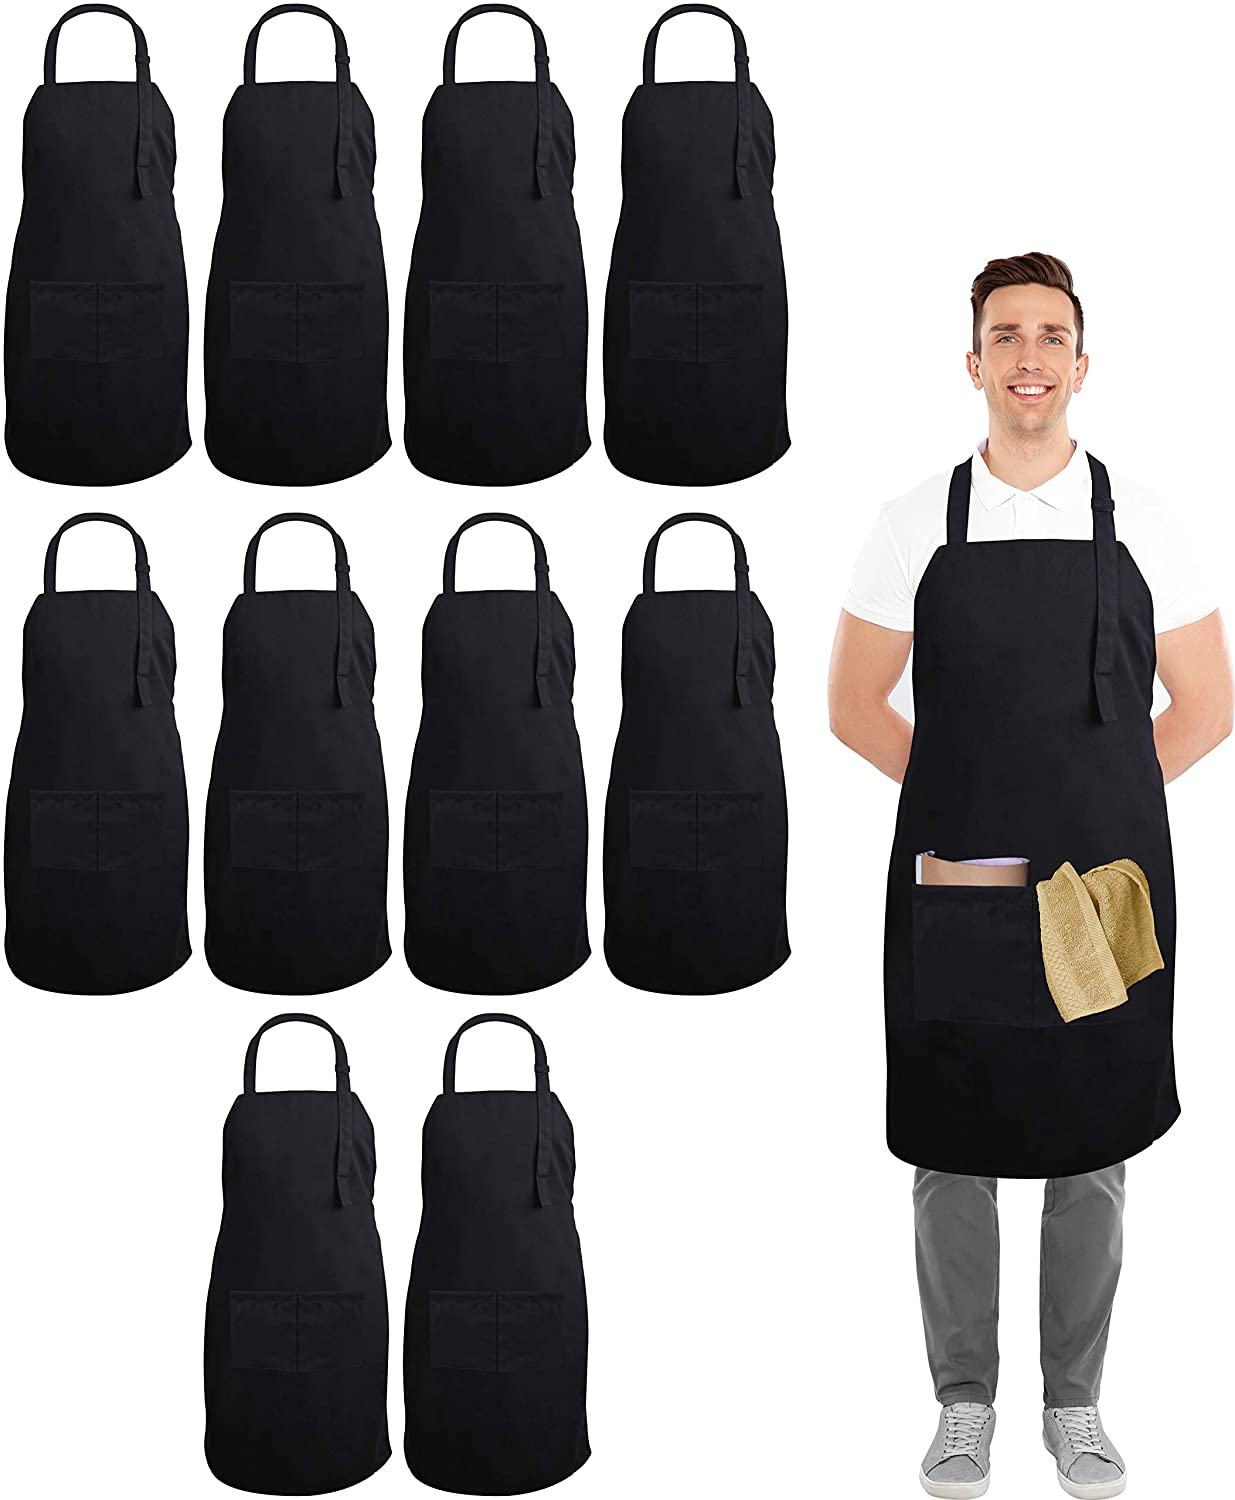 Utopia Kitchen 10 Pack Adjustable Bib Apron with 2 Pockets - Adjustable Neck Strap - 32-Inch by 28-Inch with Extra Long Ties - Black